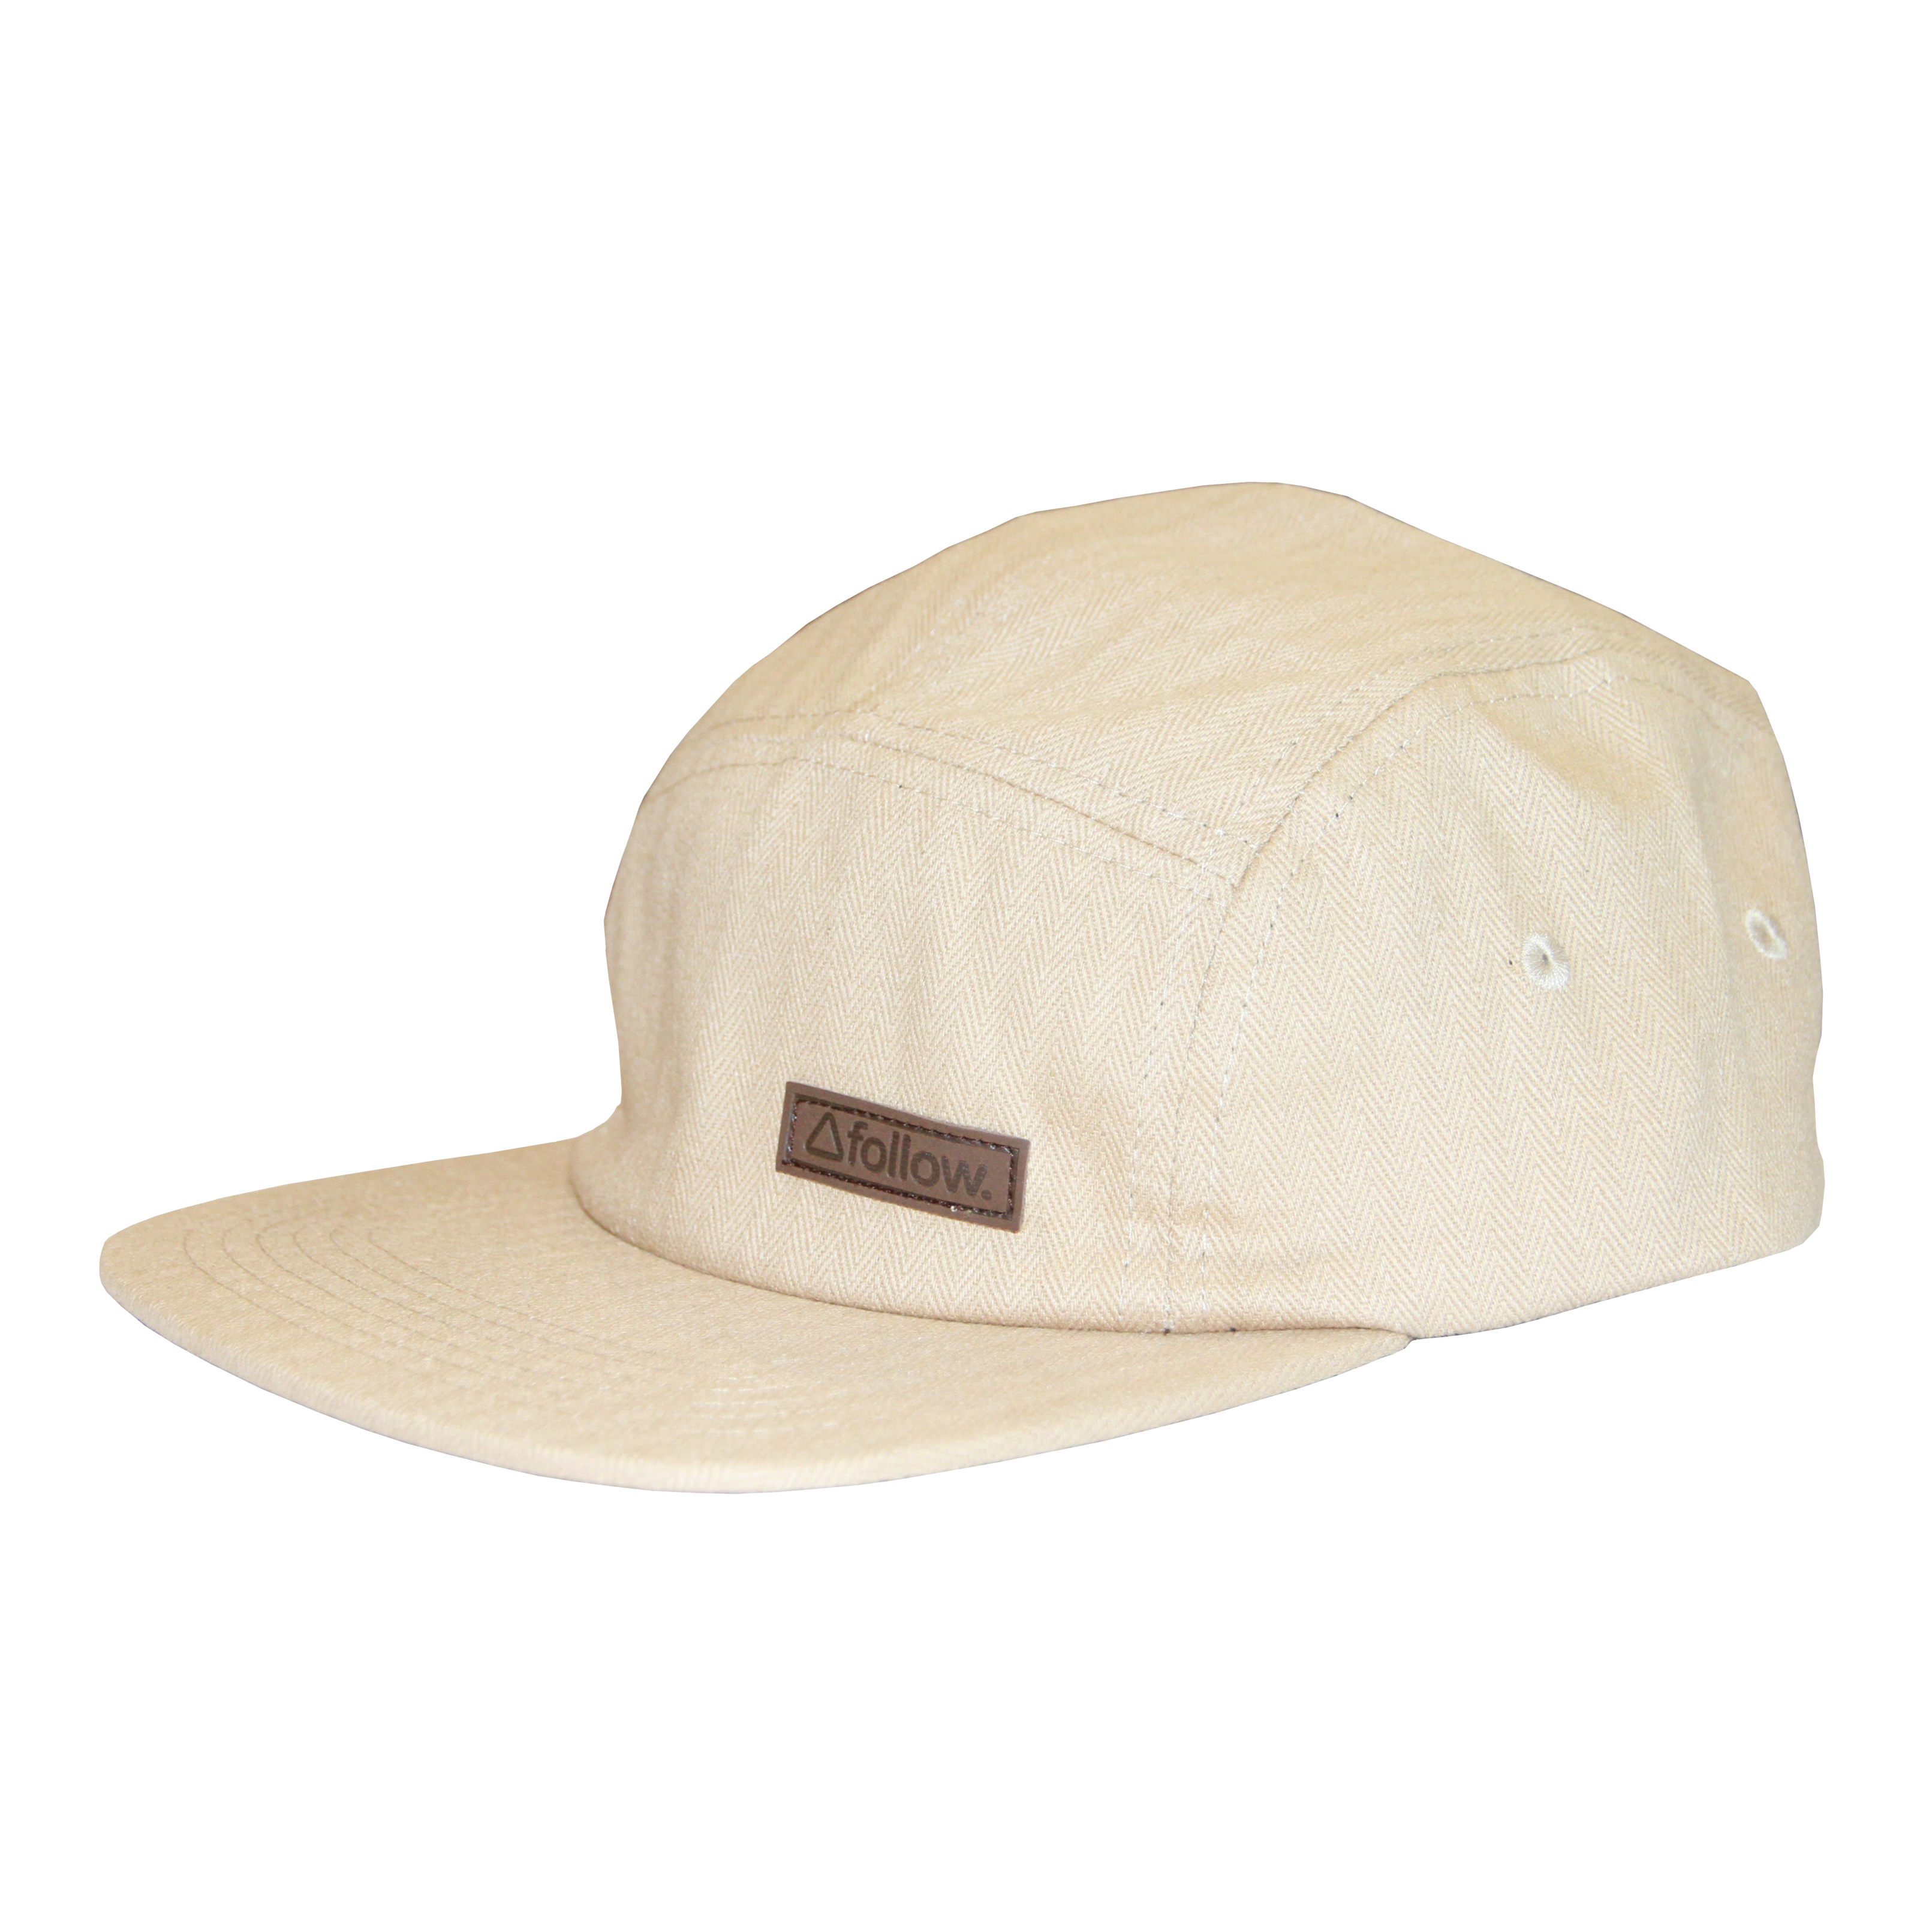 5 PANEL MENS CAP - KHAKI OSFM FOLLOW 2016